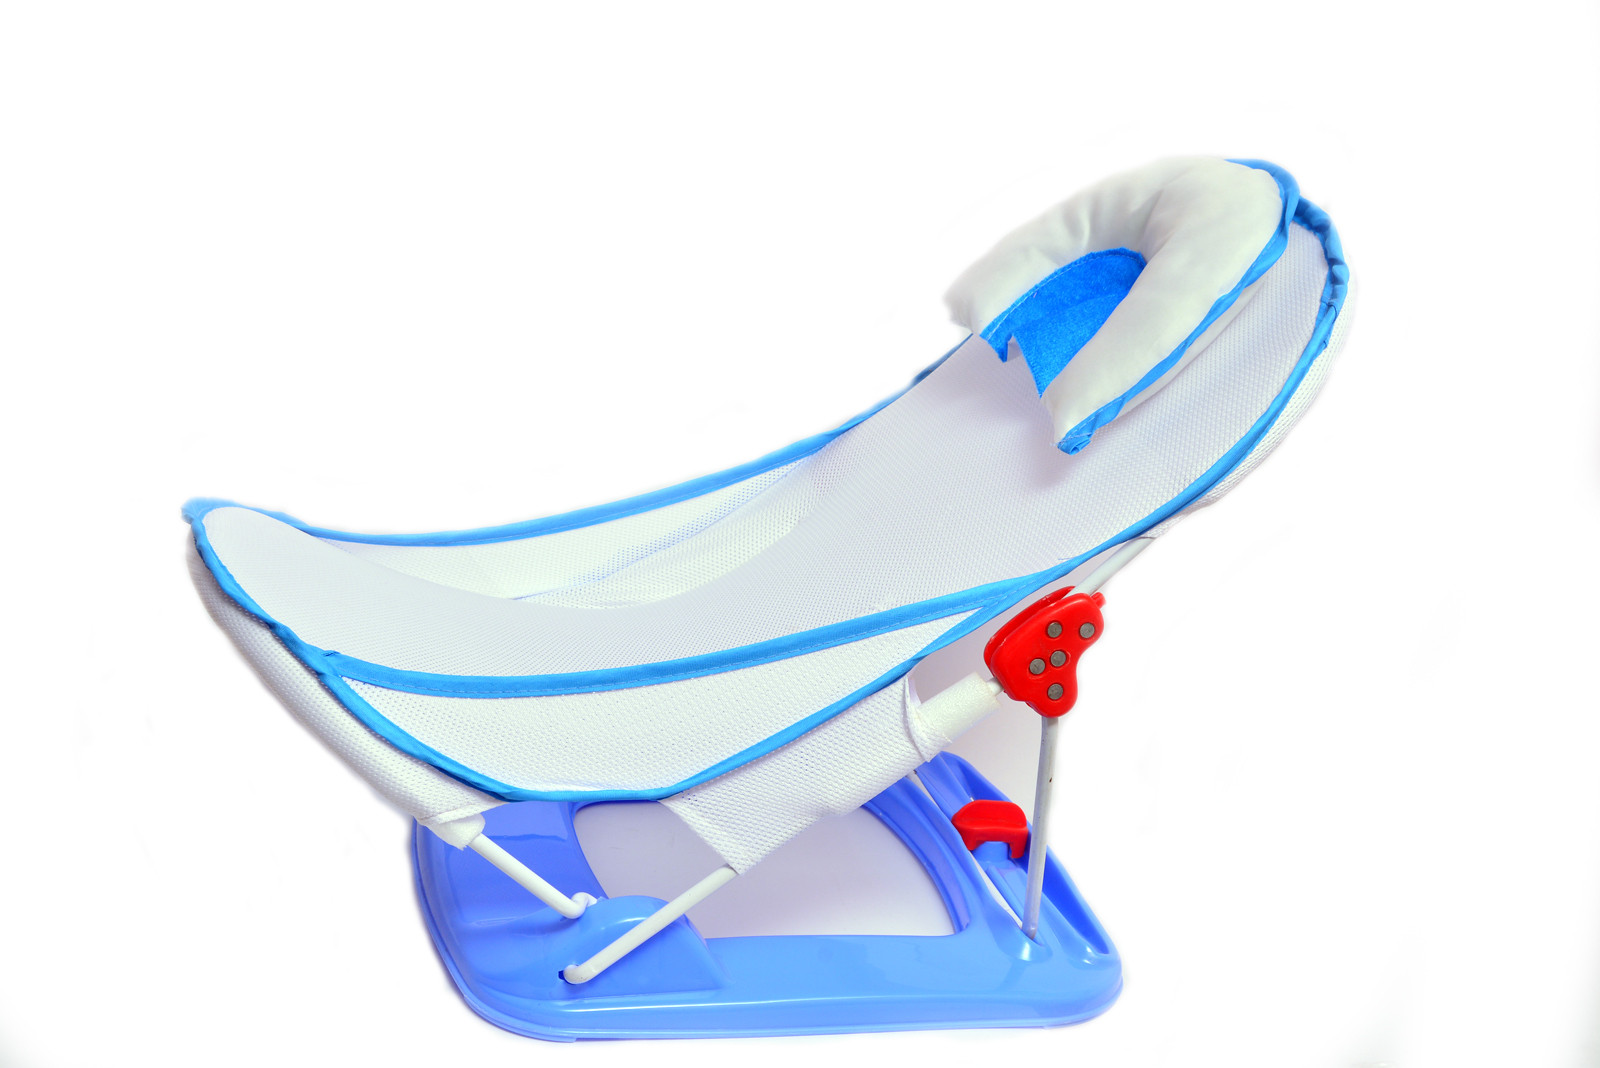 Buy online Baby Bath Tubs, Robes & Towels at Flipkart.com